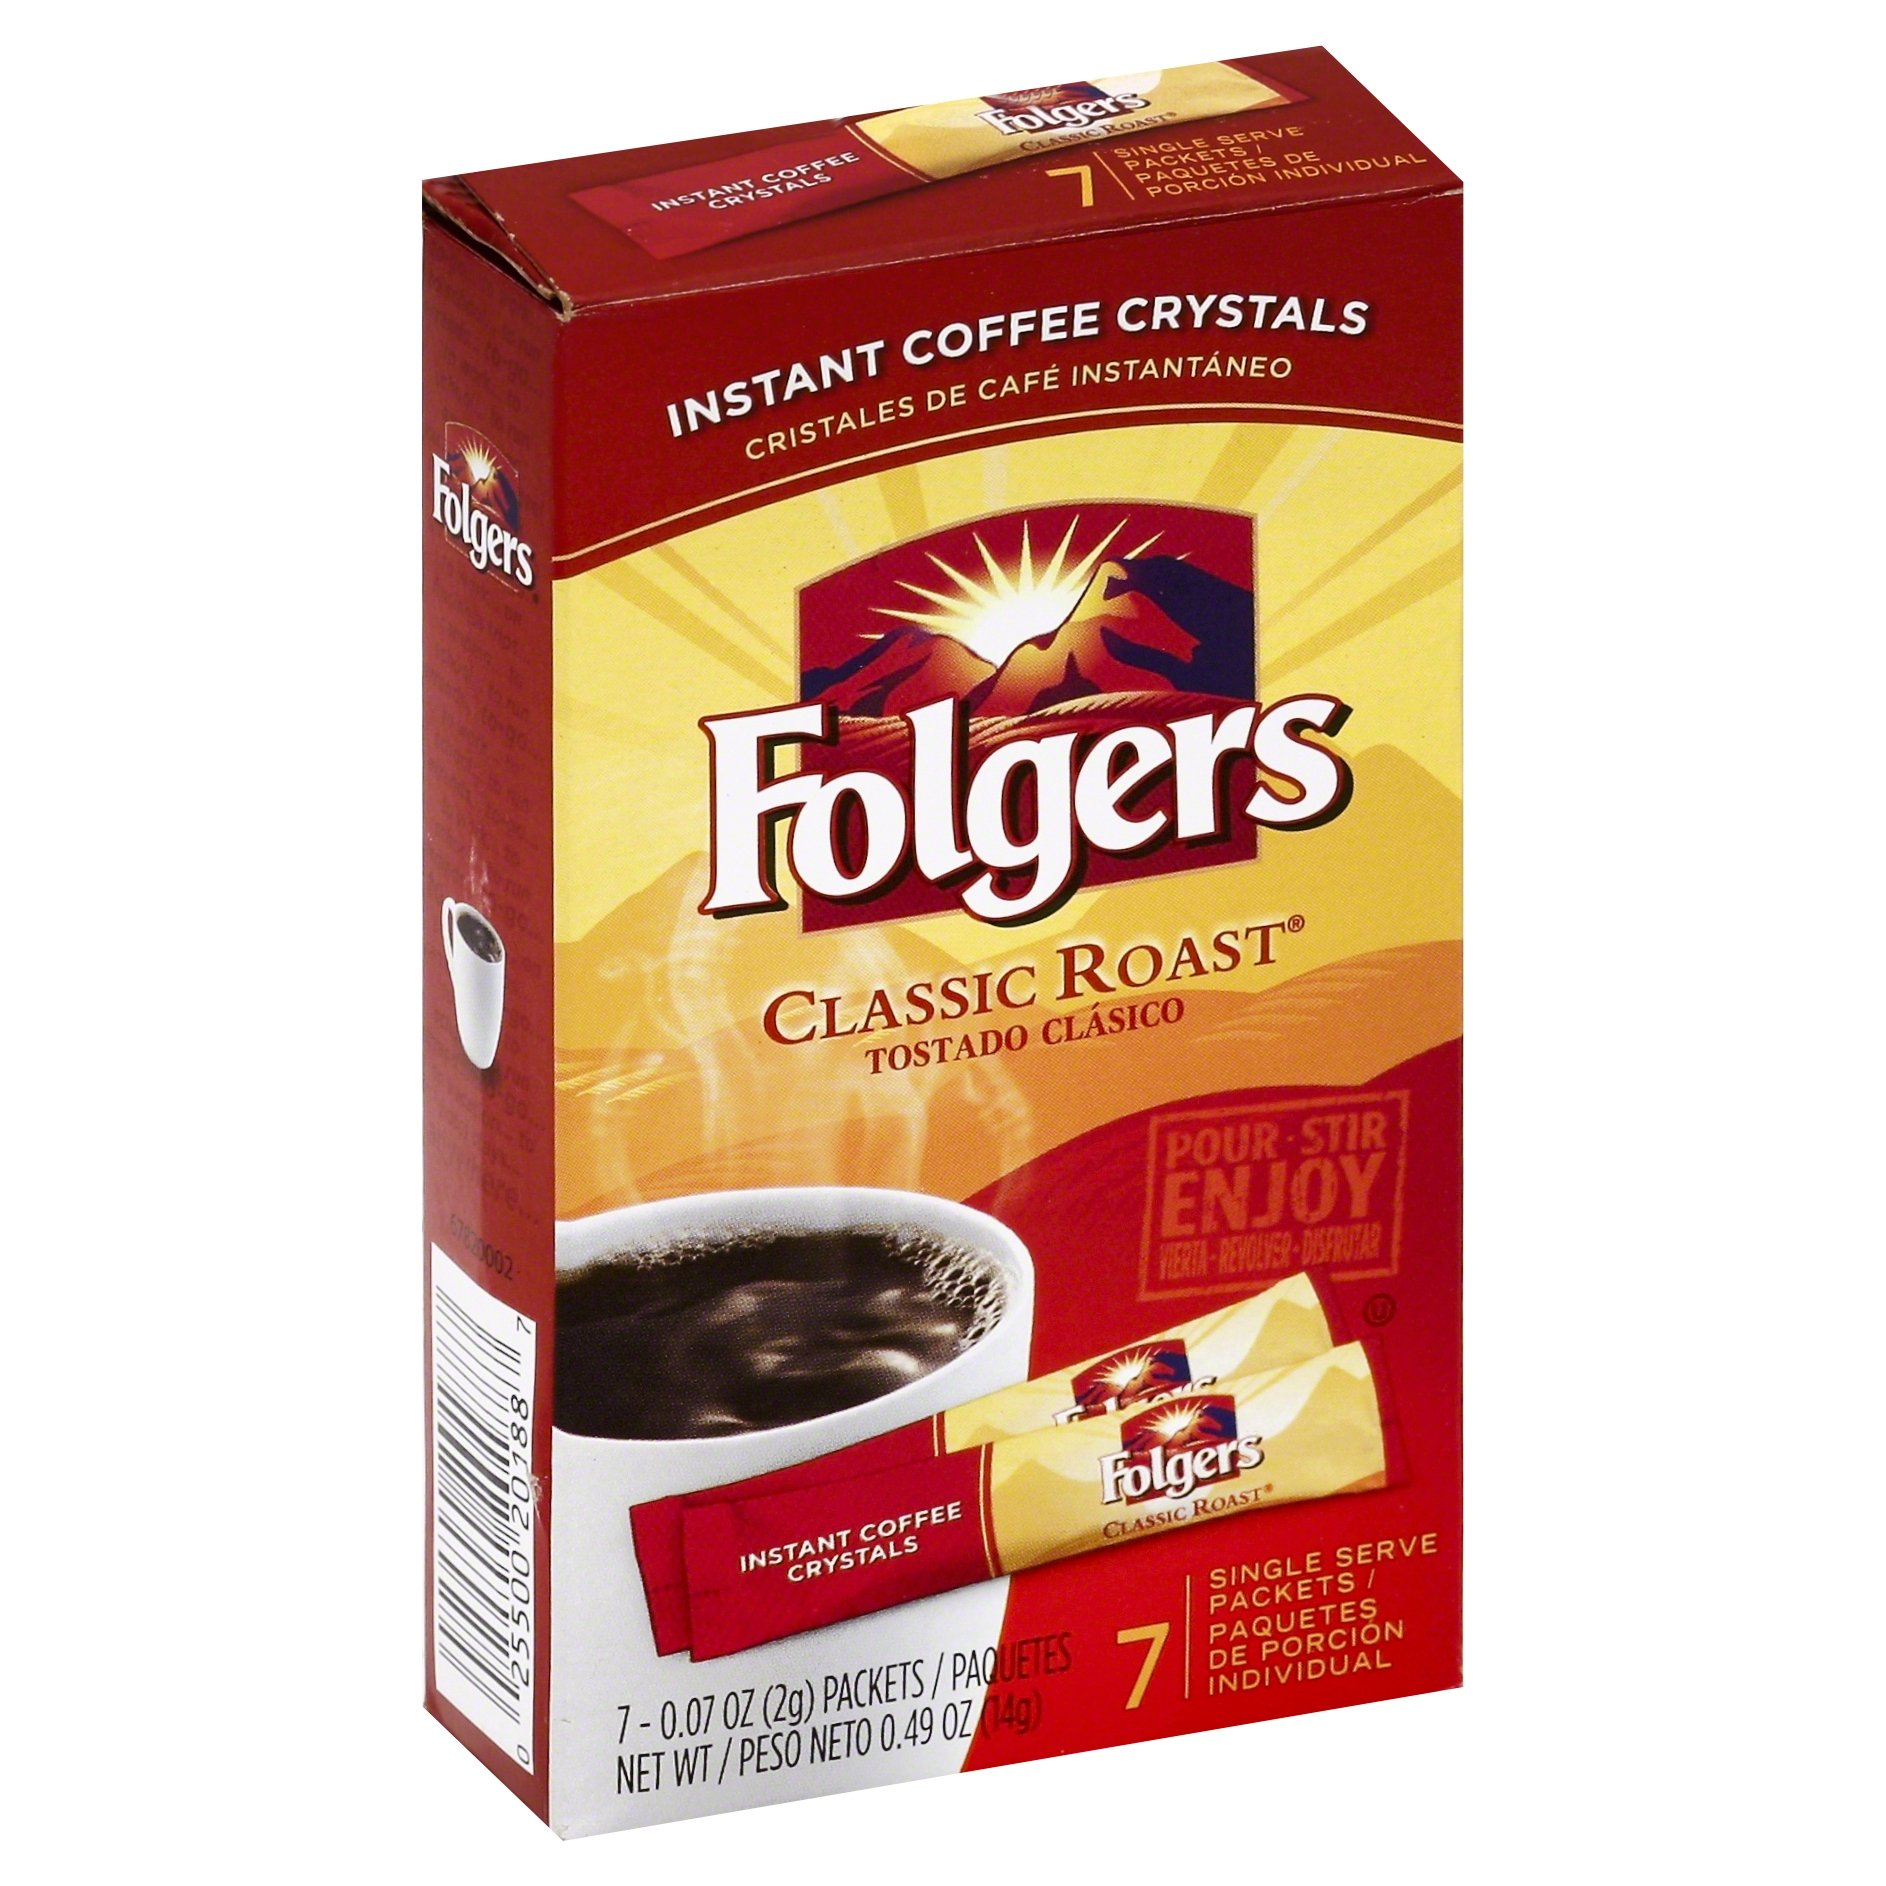 Folgers Classic Roast Instant Coffee, Single Serve Packets, 7 Count (Pack of 12)